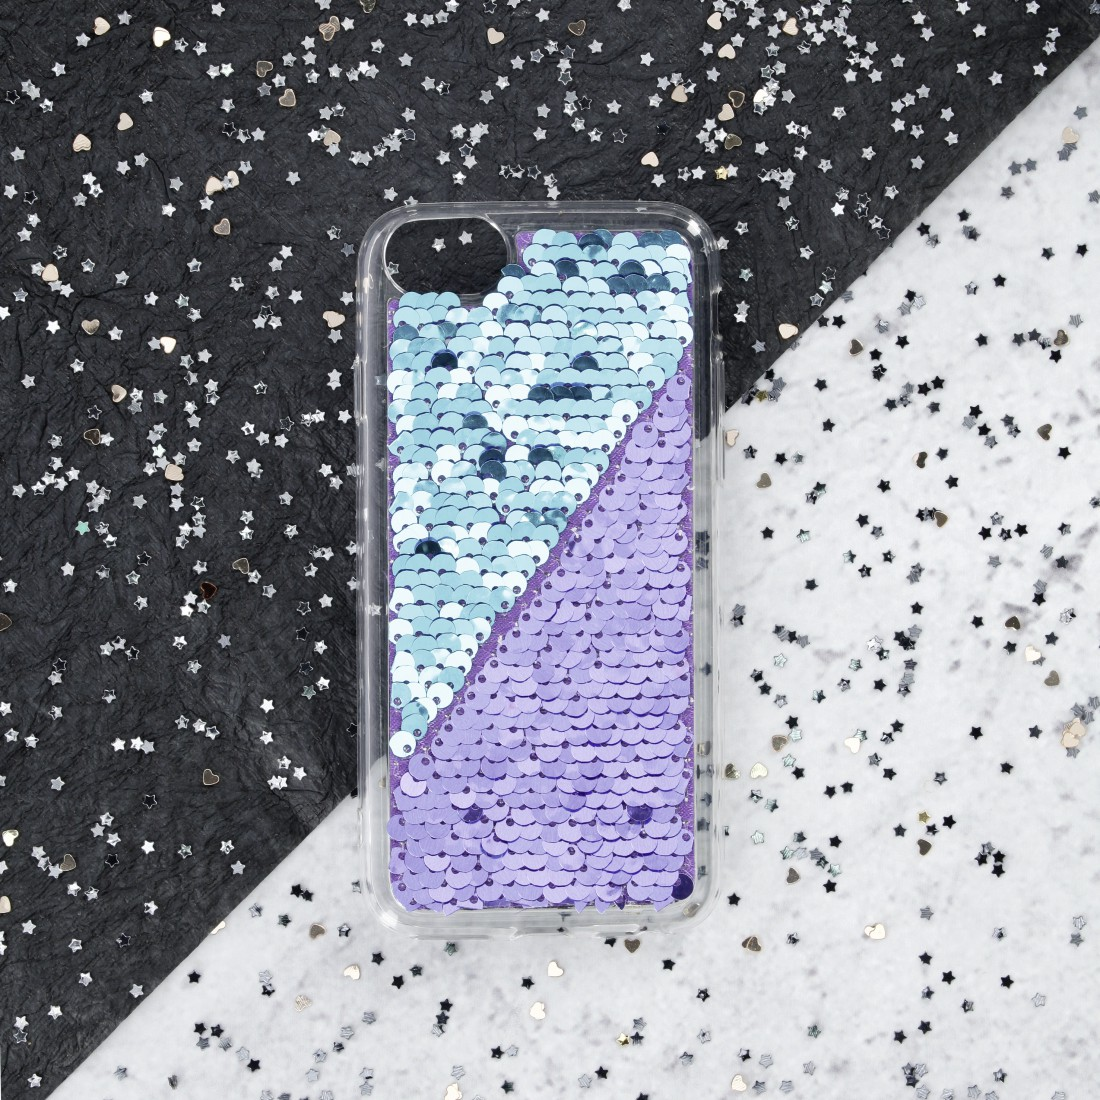 "awx2 Druckfähige Anwendung 2 - Hama, Cover ""Paillettes"" für Apple iPhone XR, Lila/Türkis"